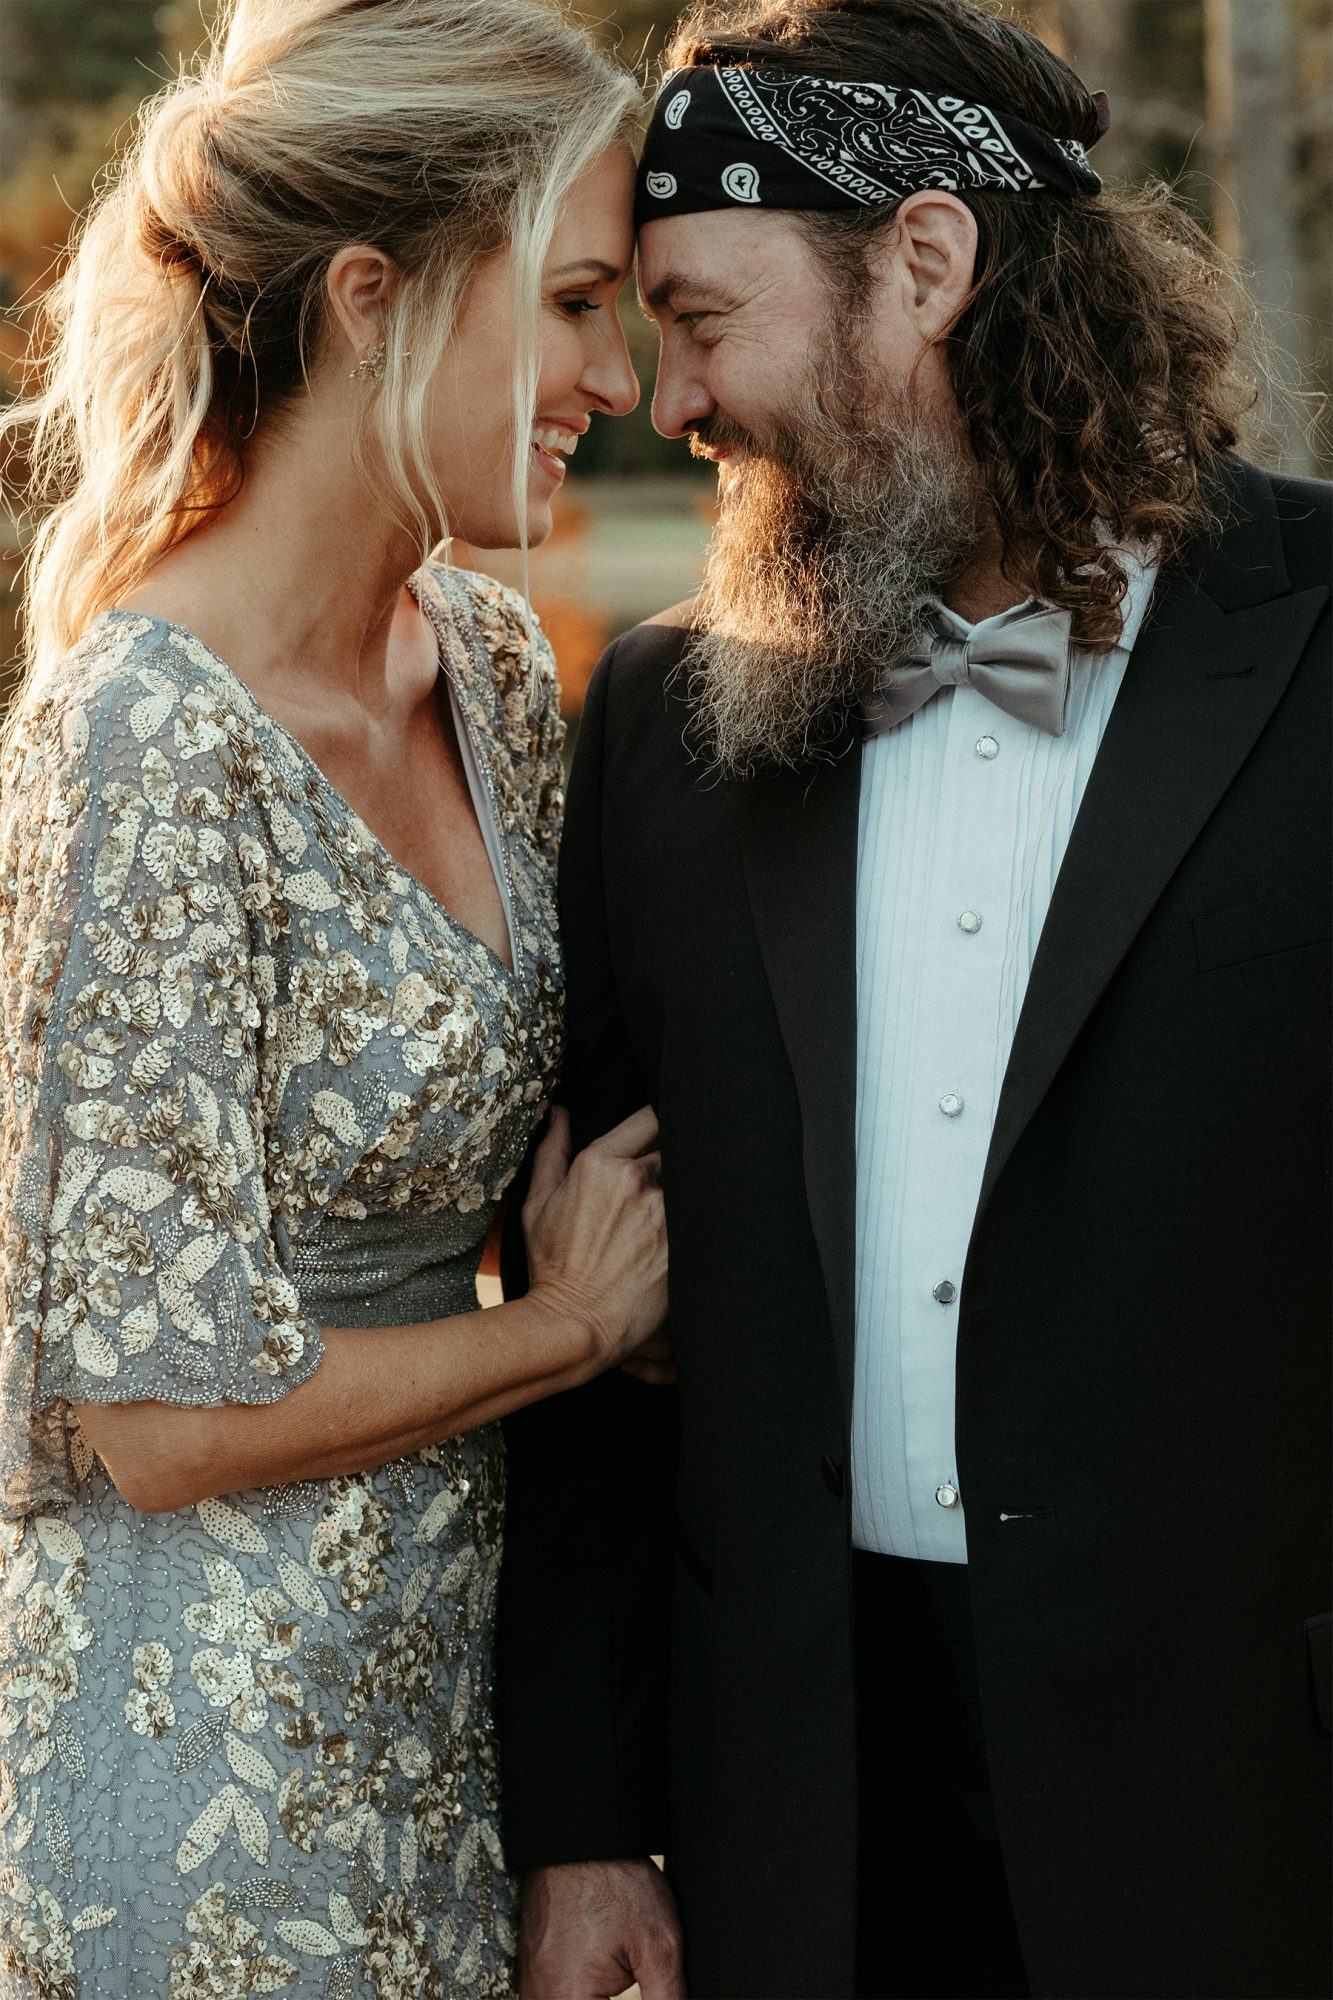 Duck Dynasty's Korie and Willie Robertson